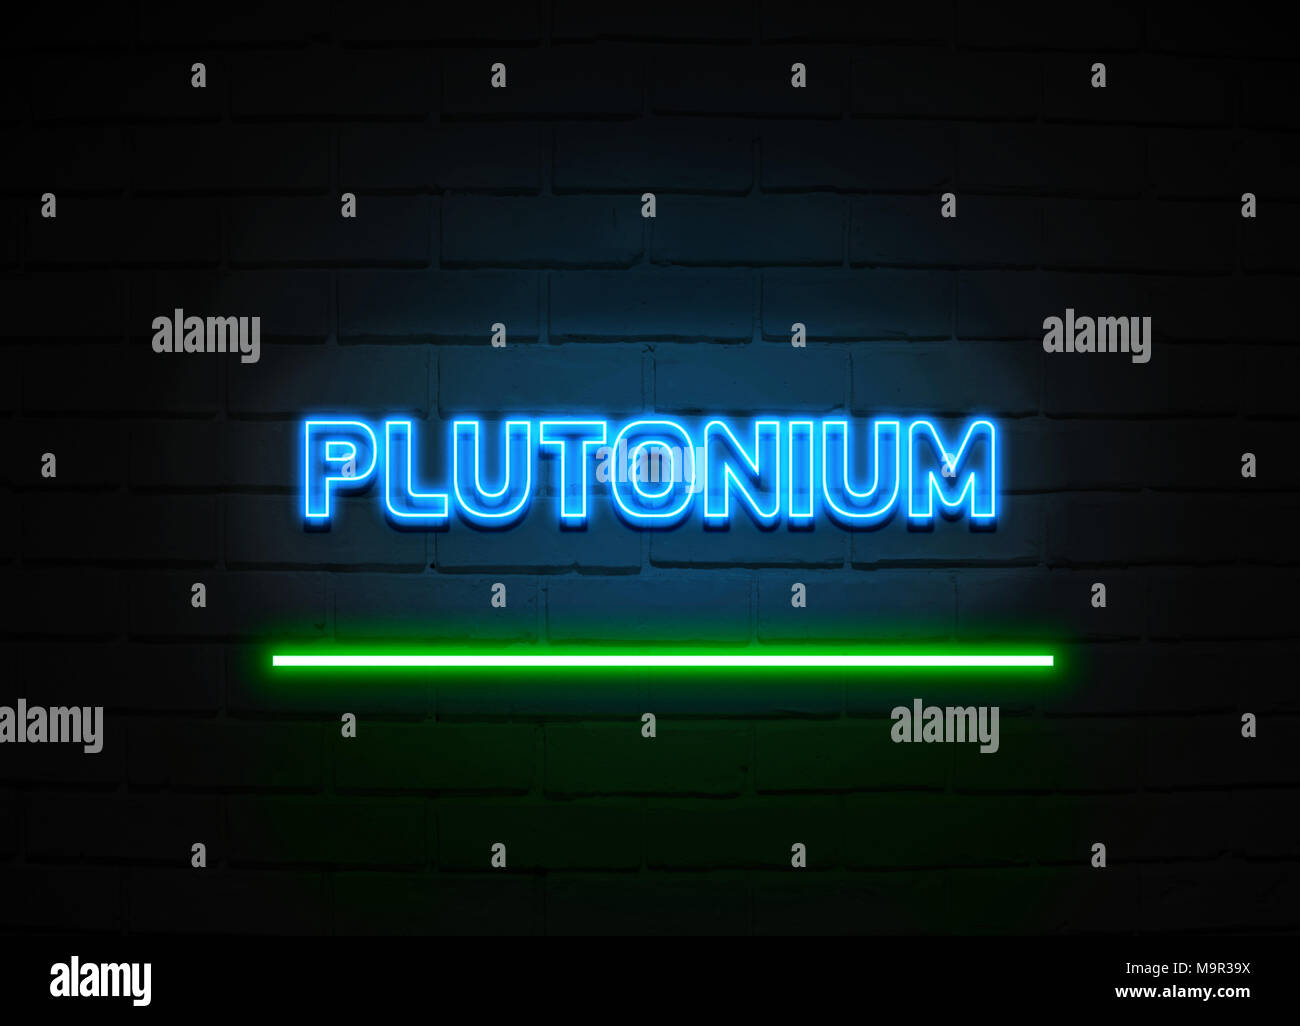 Plutonium neon sign - Glowing Neon Sign on brickwall wall - 3D rendered royalty free stock illustration. - Stock Image